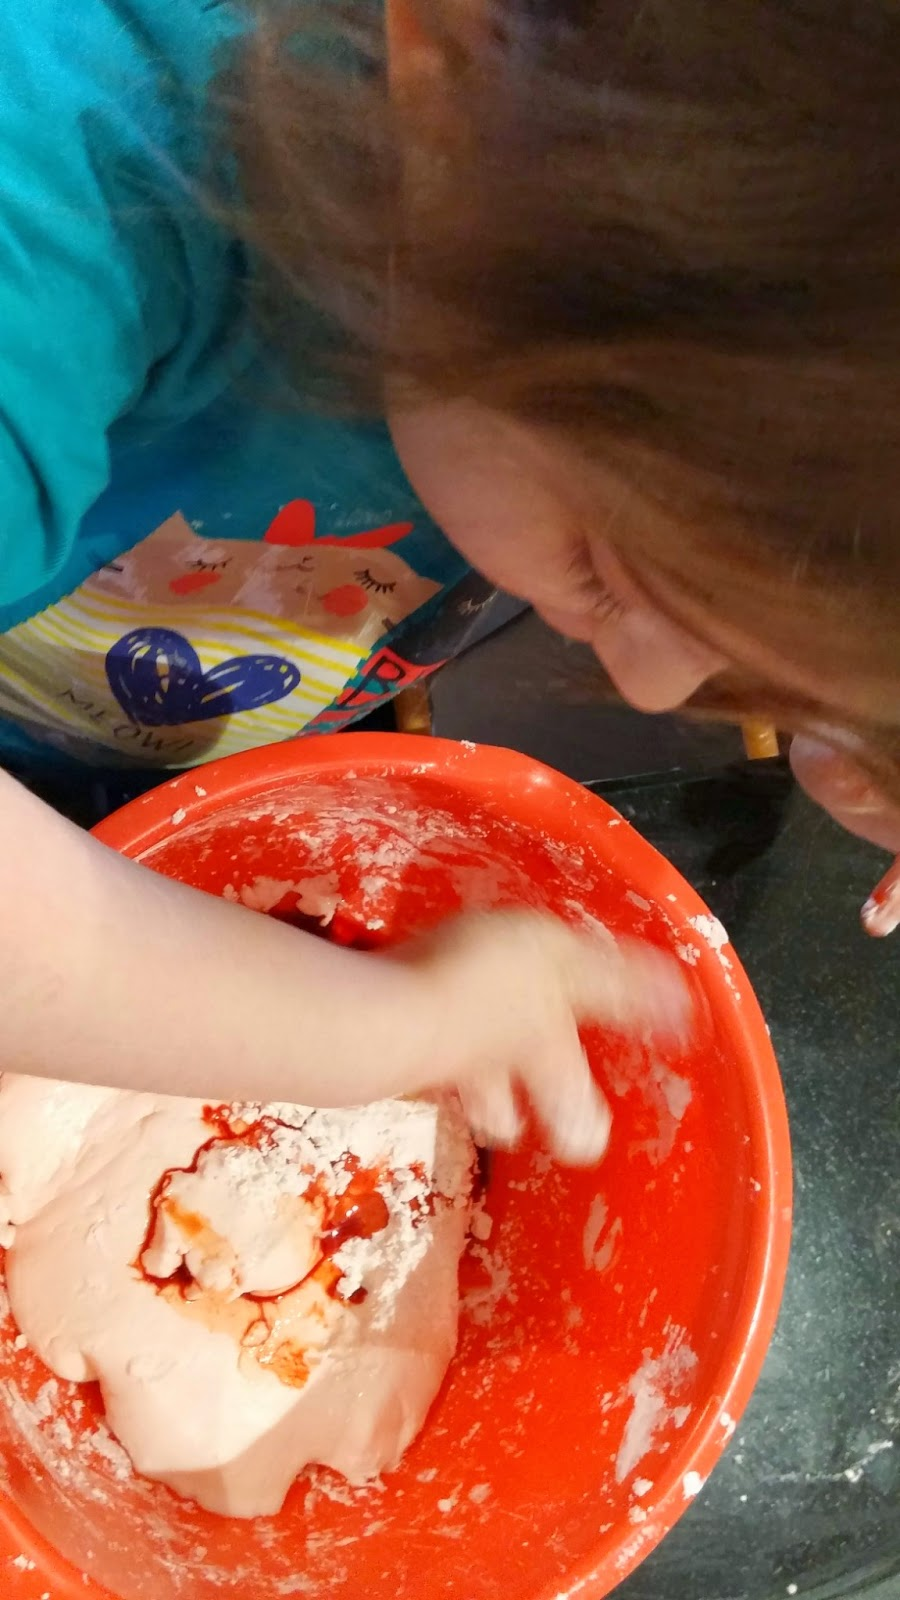 eldest messy play